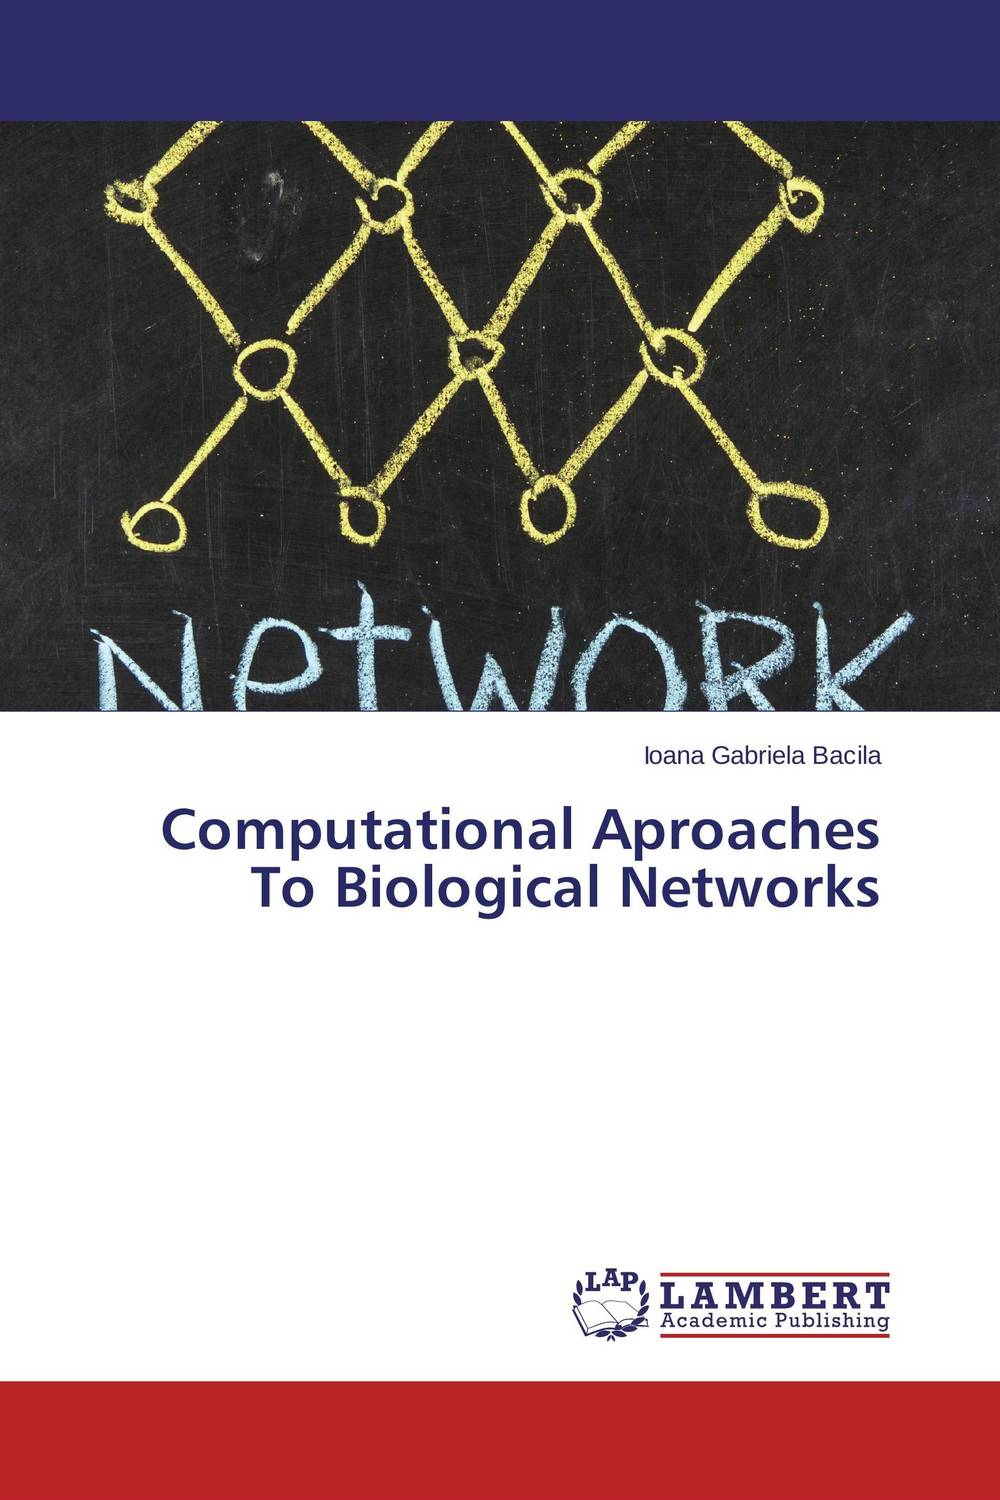 Computational Aproaches To Biological Networks